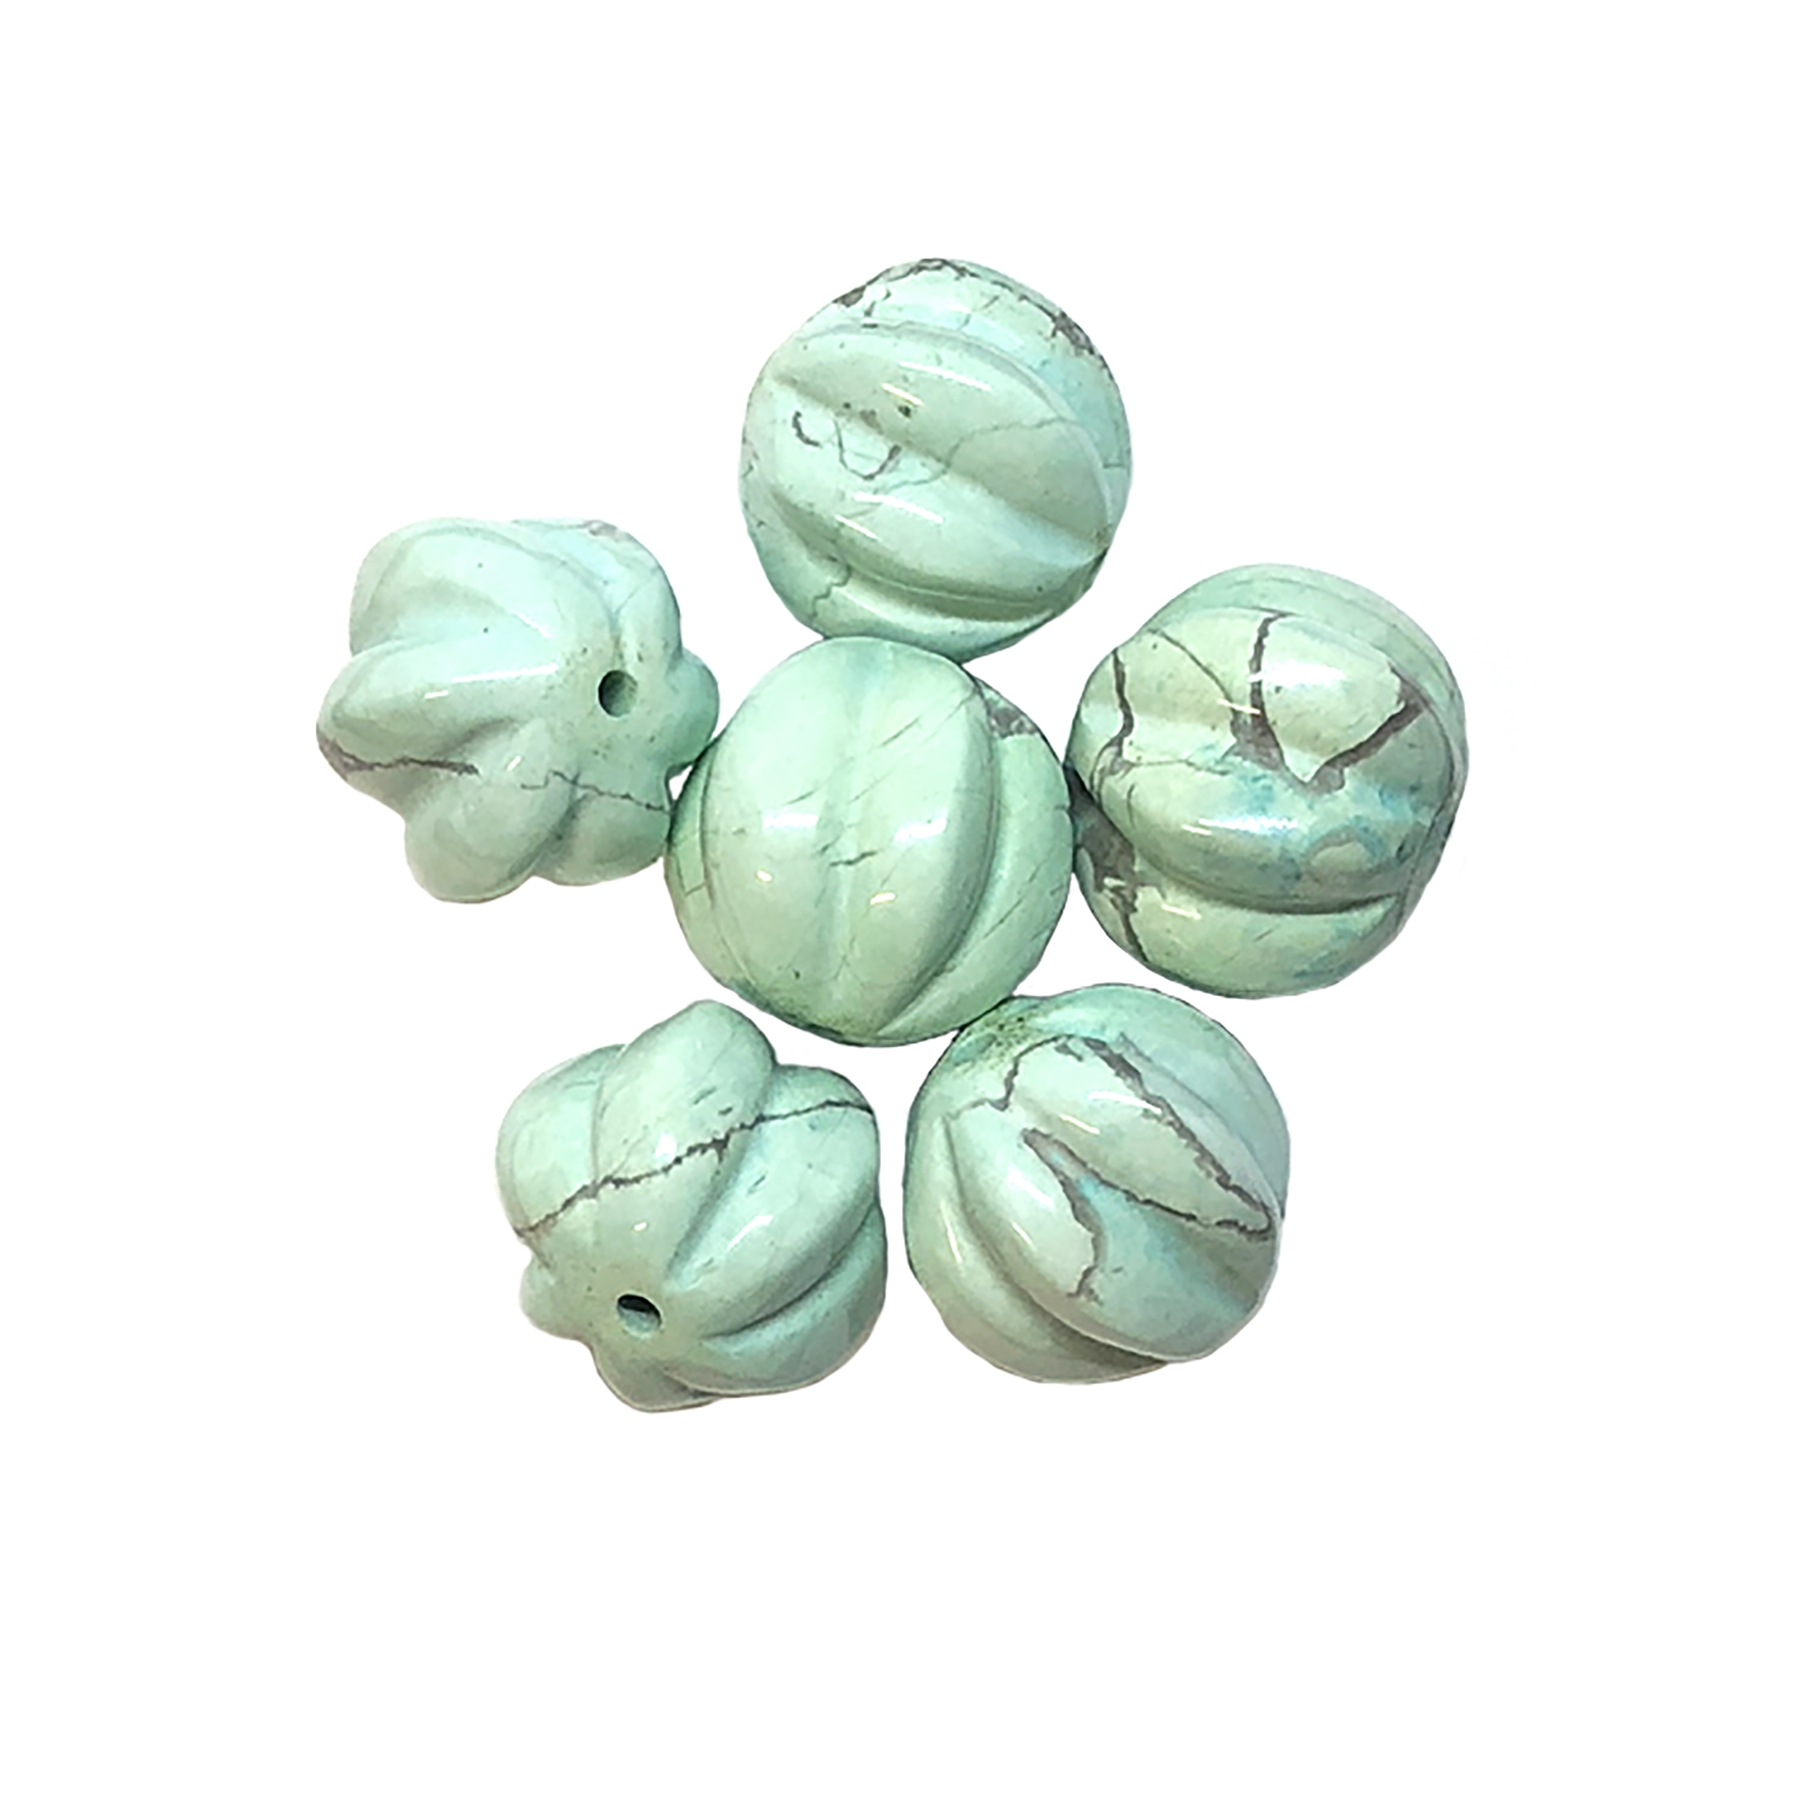 semi precious beads, turquoise, Chinese turquoise focal beads, 15x8mm bead, bead stone, natural bead, dyed howlite, turquoise blue, black matrix stone, semi precious beads, 12mm, beads, B'sue Boutiques, bead, jewelry making, beading supplies, melon, 09034